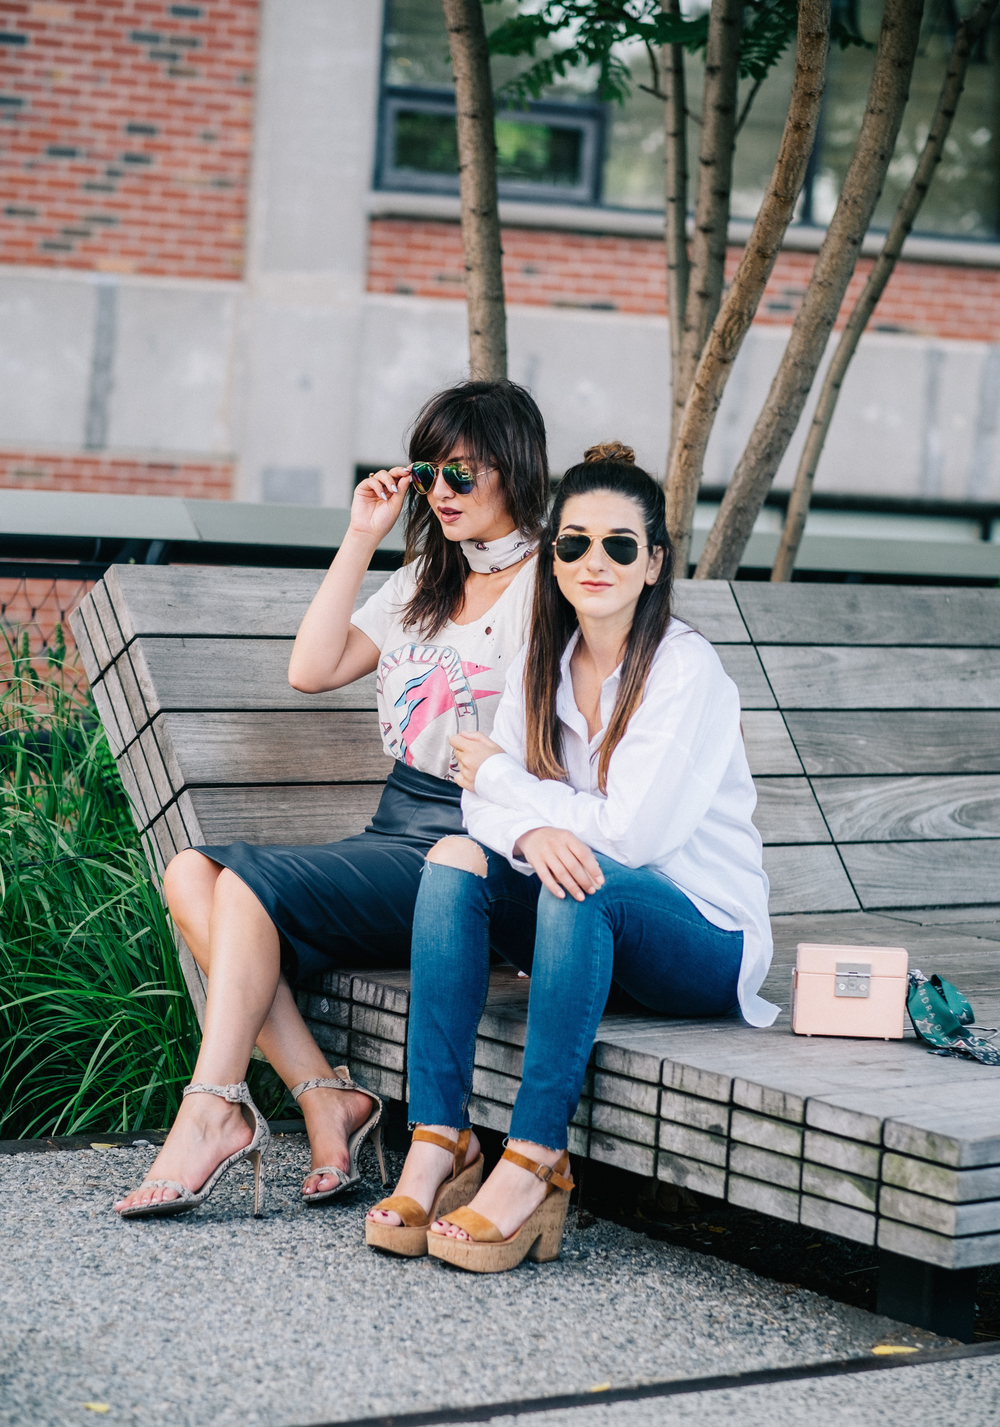 Photoshoot Collab With Lexicon Of Style How To Make Blogger Friends Louboutins & Love Fashion Blog Esther Santer NYC Street Style Blogger Outfit OOTD Trendy Oversized White Dress Shirt Patches Ripped Jeans Denim Zara Scarf Heels Wedges Sunglasses Bag.jpg